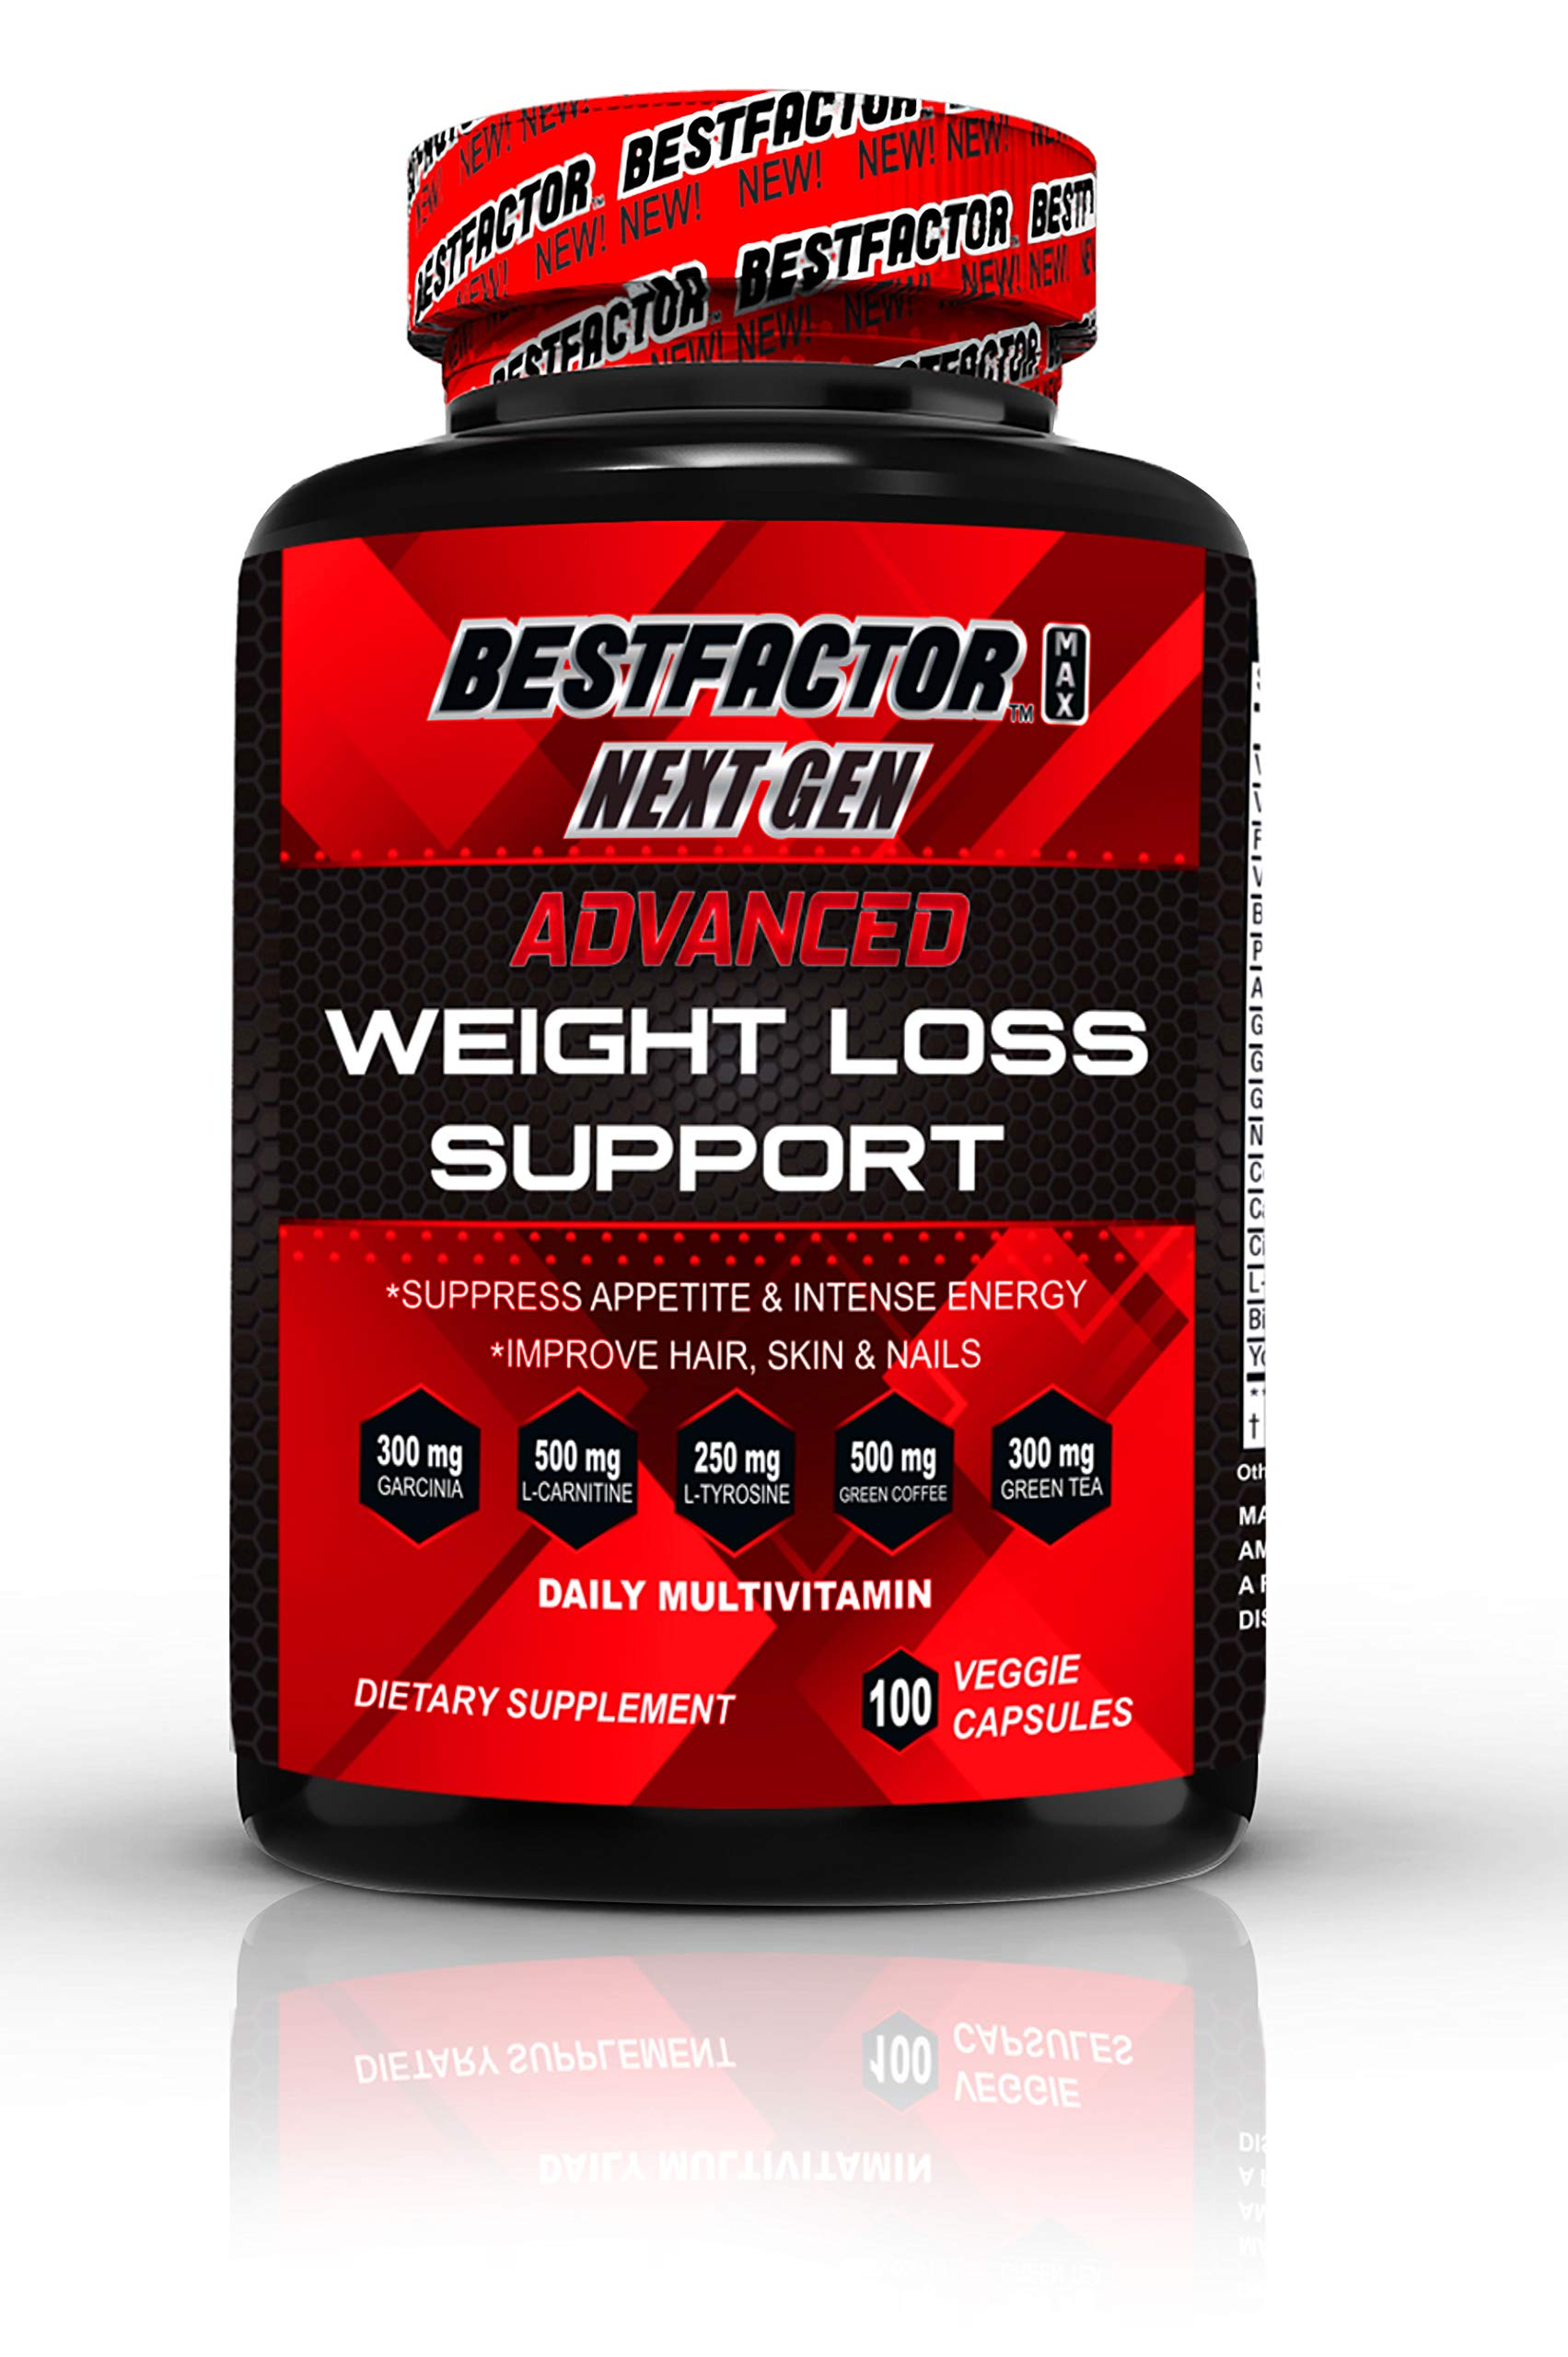 Weight Loss Pills for Women & Men by BESTFACTOR (100 Veggie Caps). Thermogenic Fat Burner & Appetite Suppressant. Fast Metabolism Diet Pills & Weight Loss Supplements for Energy - Daily Multivitamin.